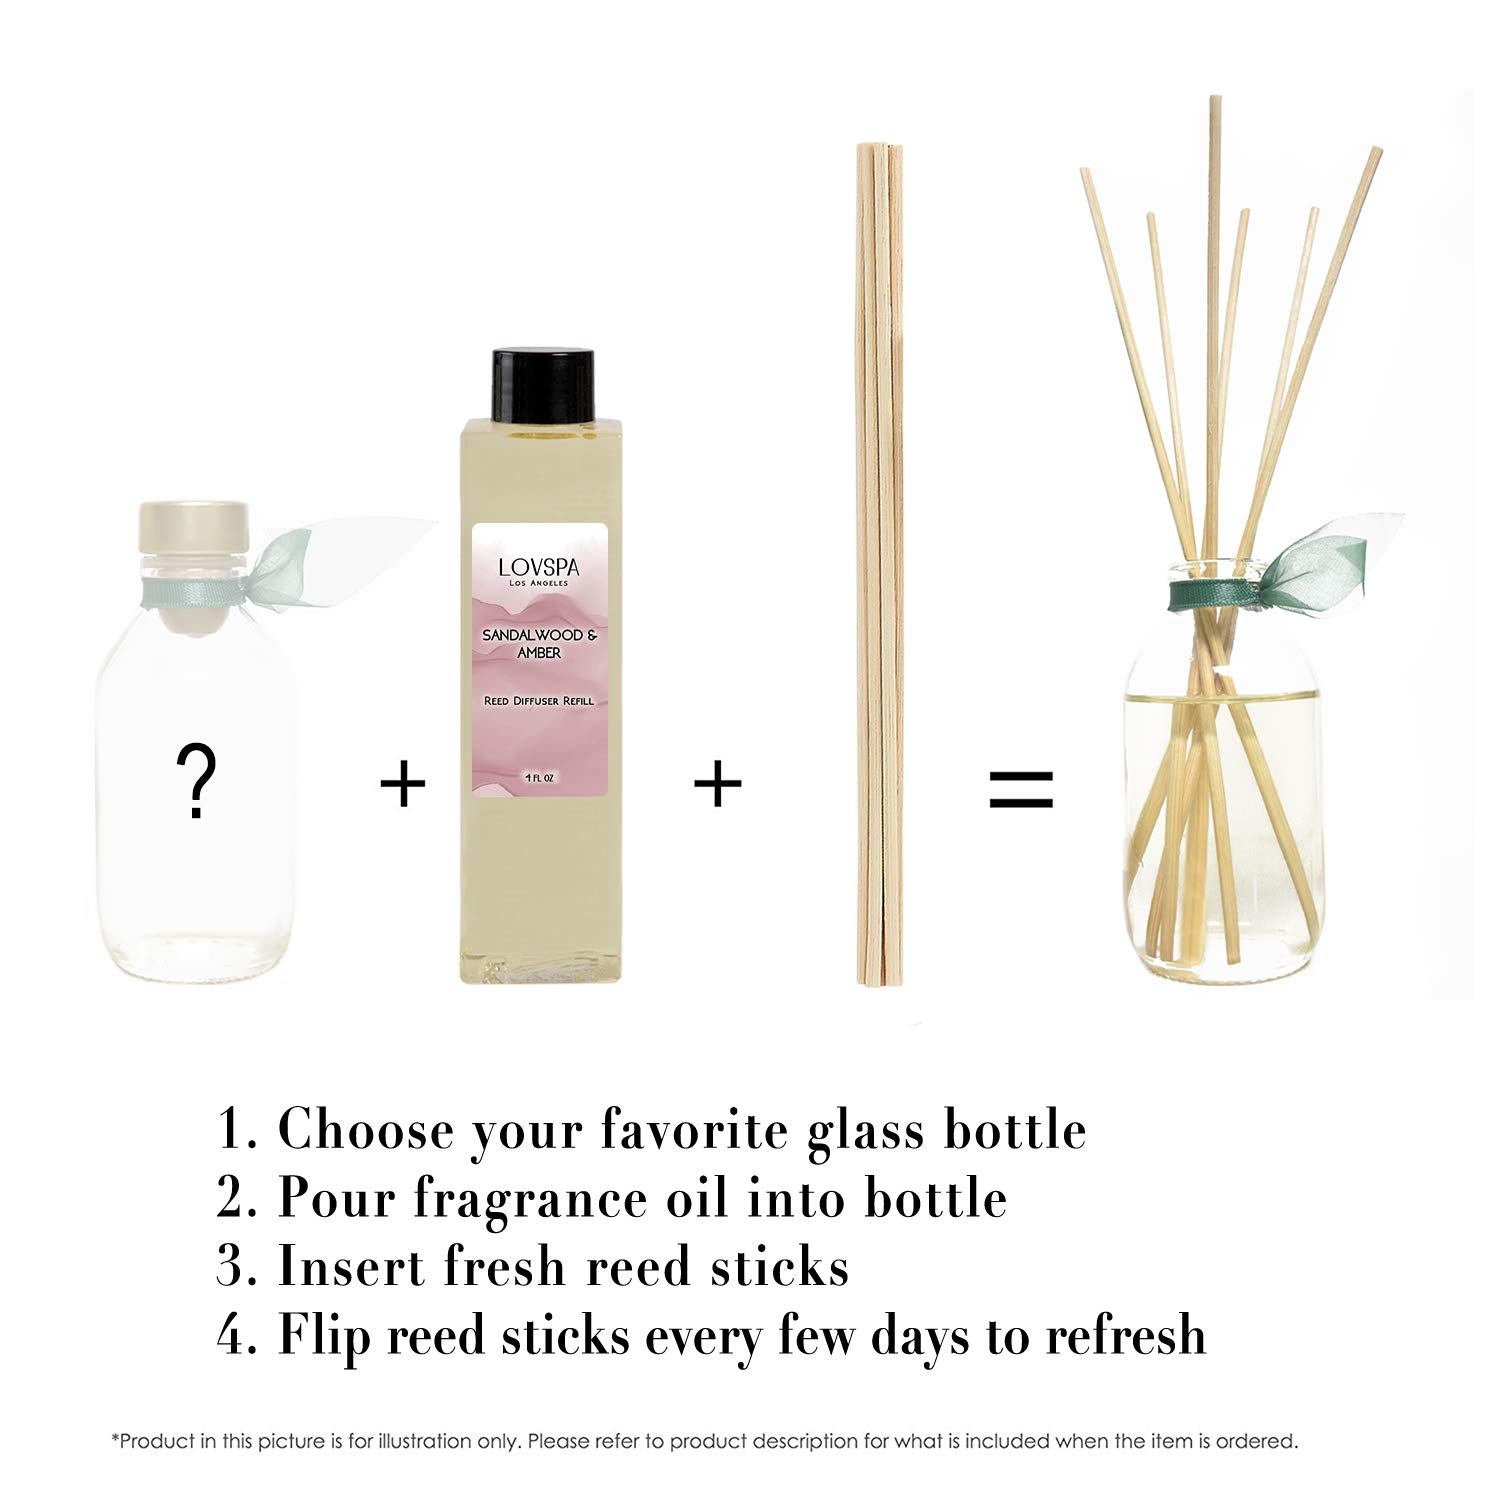 LOVSPA Sandalwood & Amber Reed Diffuser Oil Refill with Reed Sticks | Sandalwood & Amber with Notes of Bergamot, Orange, Rose & Violet with Base of Cedarwood & Vanilla, 4 oz | Made in The USA by LOVSPA (Image #2)